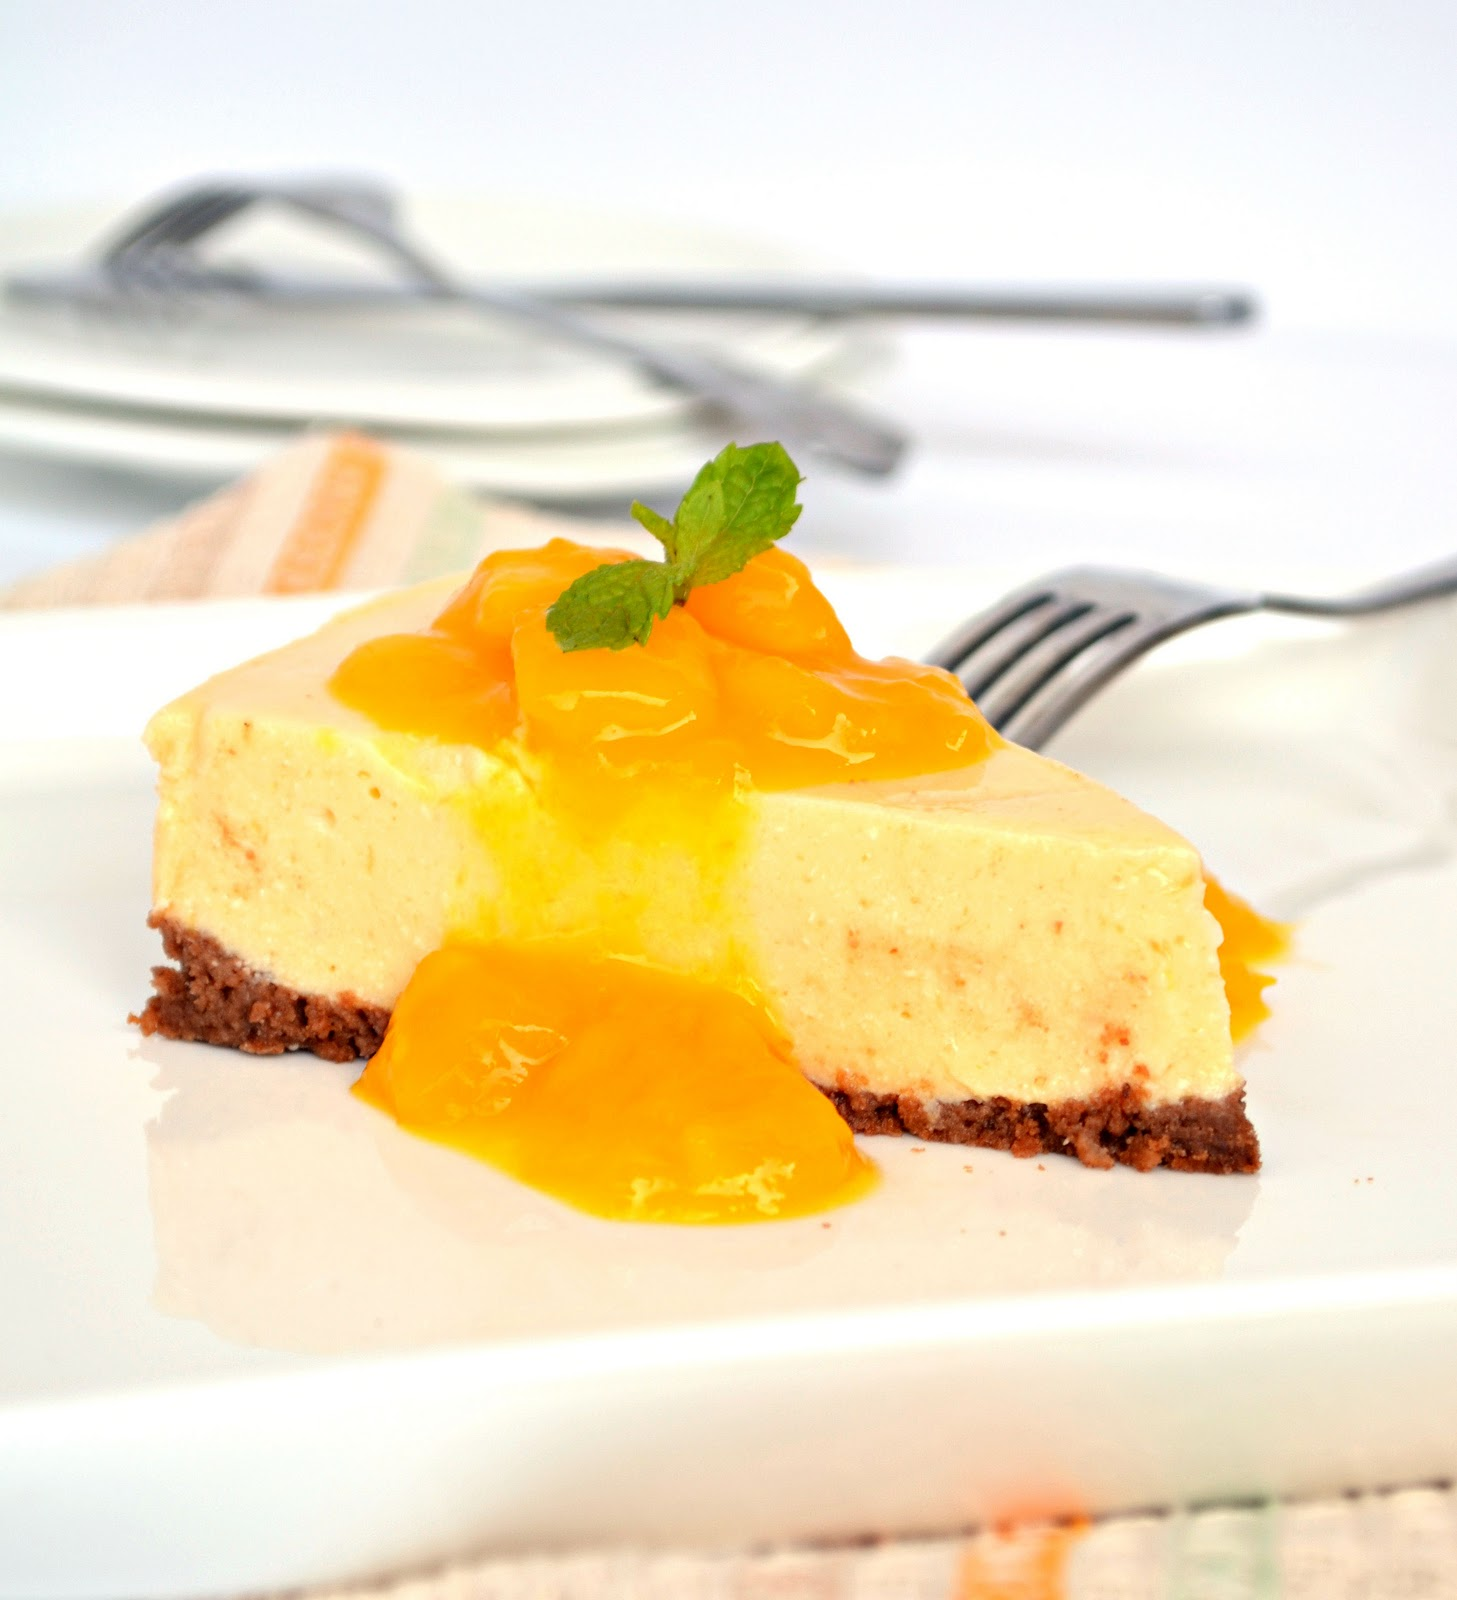 No Bake Mango Cheesecake with Mango Sauce | LOVE & other SPICES